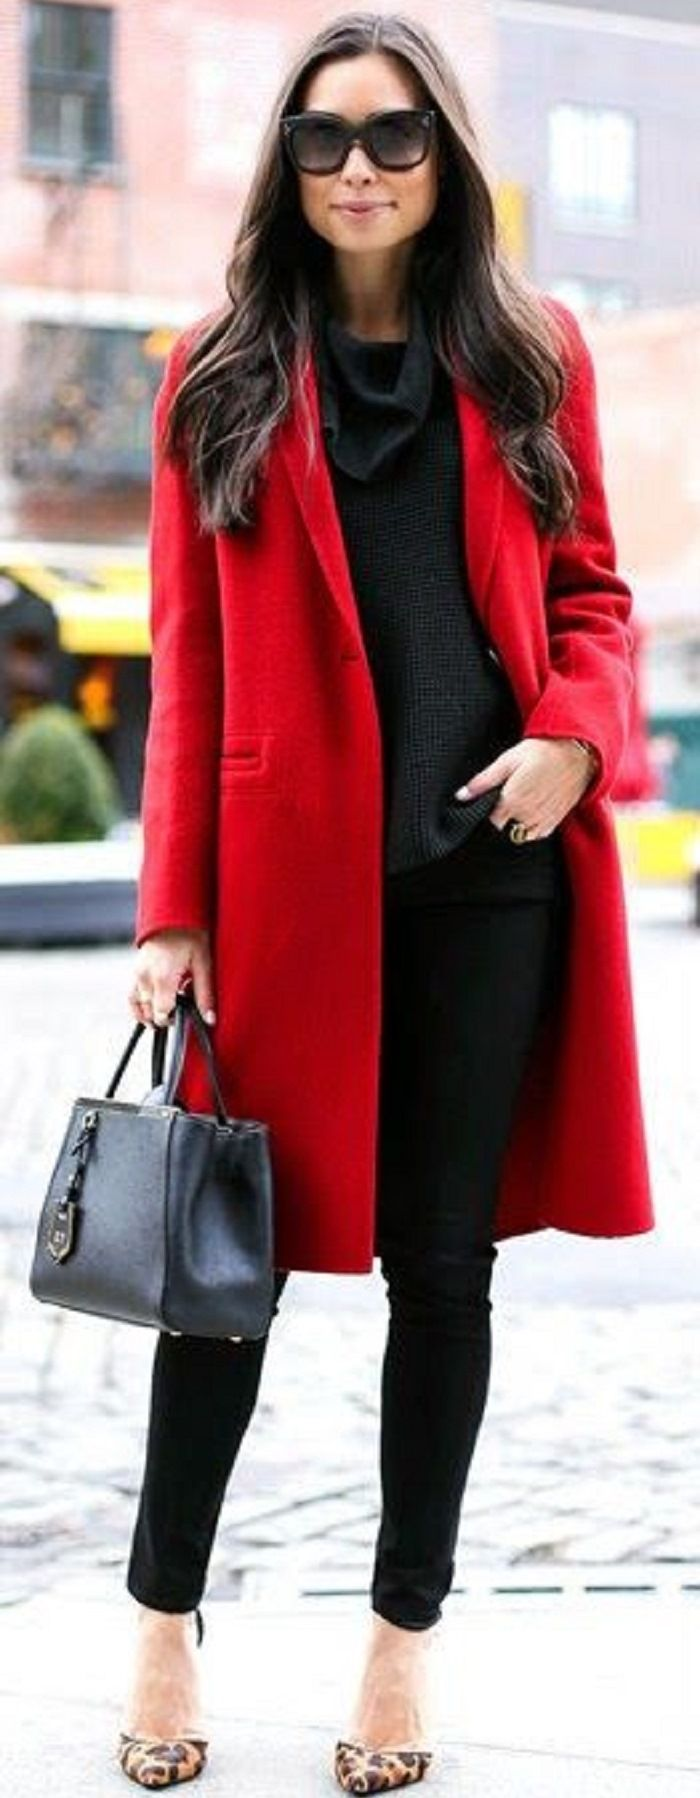 STYLISH WINTER WORK OUTFITS TO UPDATE YOUR WARDROBE